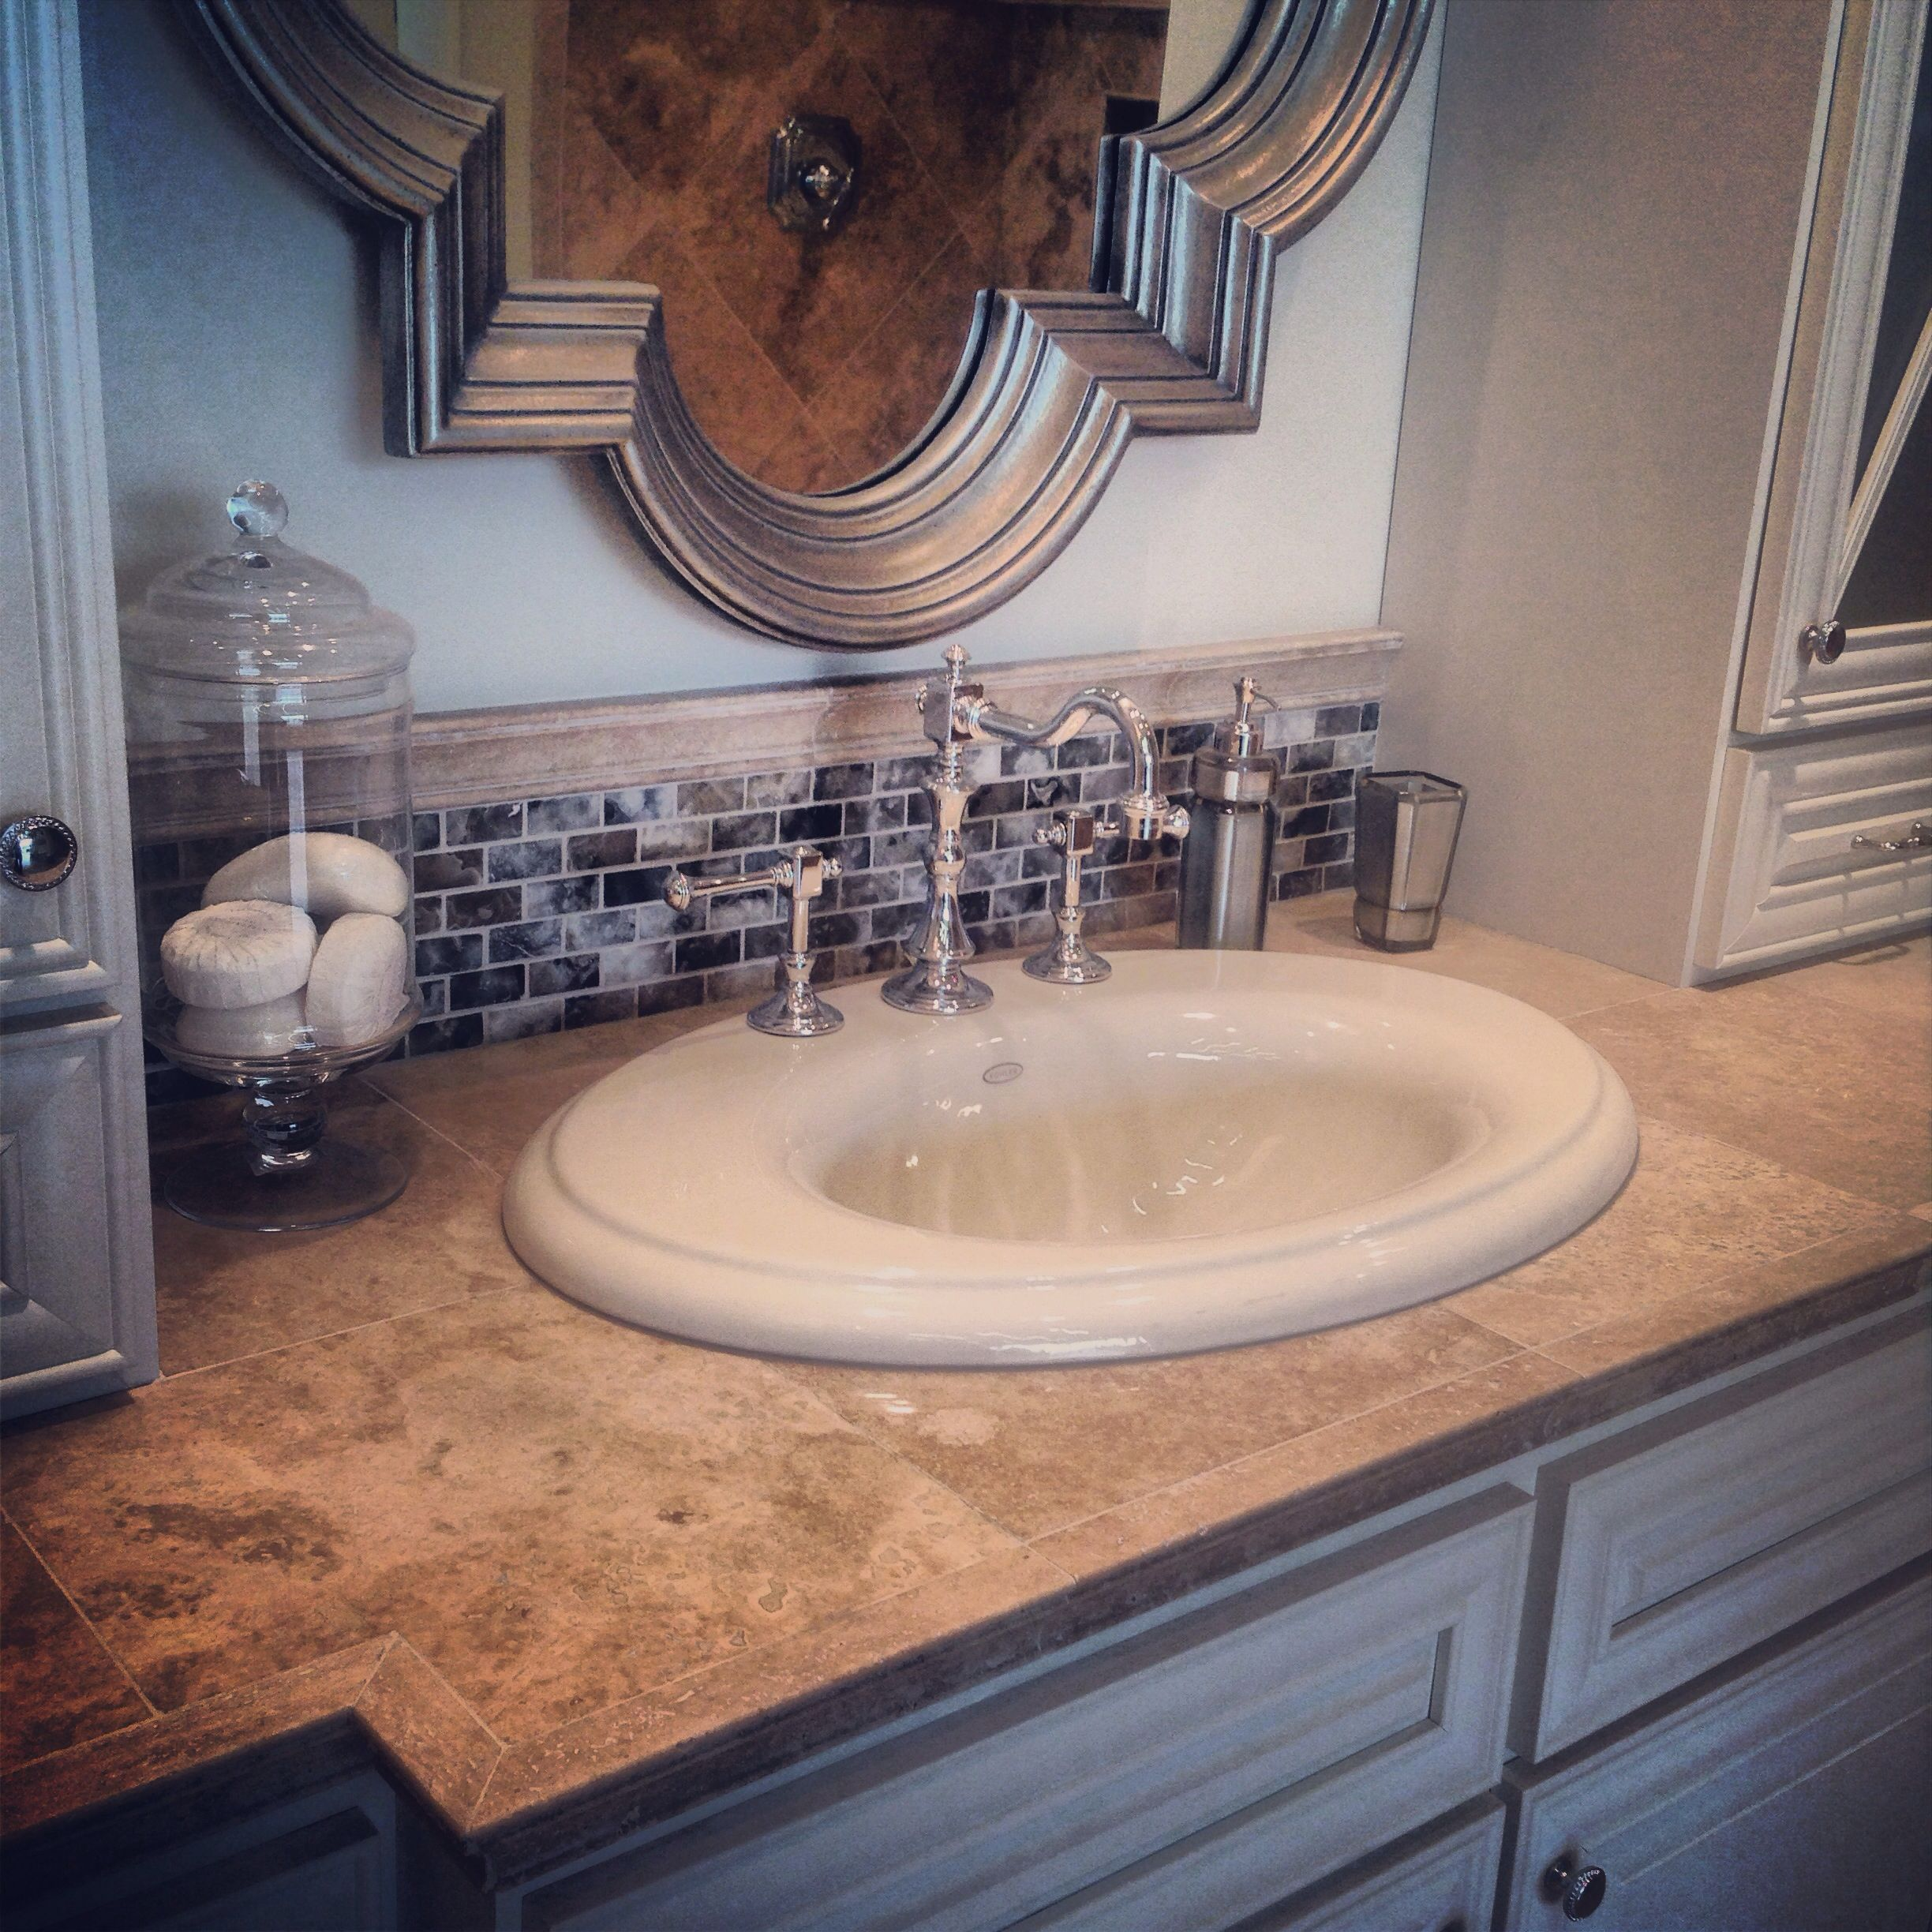 Travertine Tile Countertop For The Vanity Thetileshop Bathroom Pinterest Travertine Tile